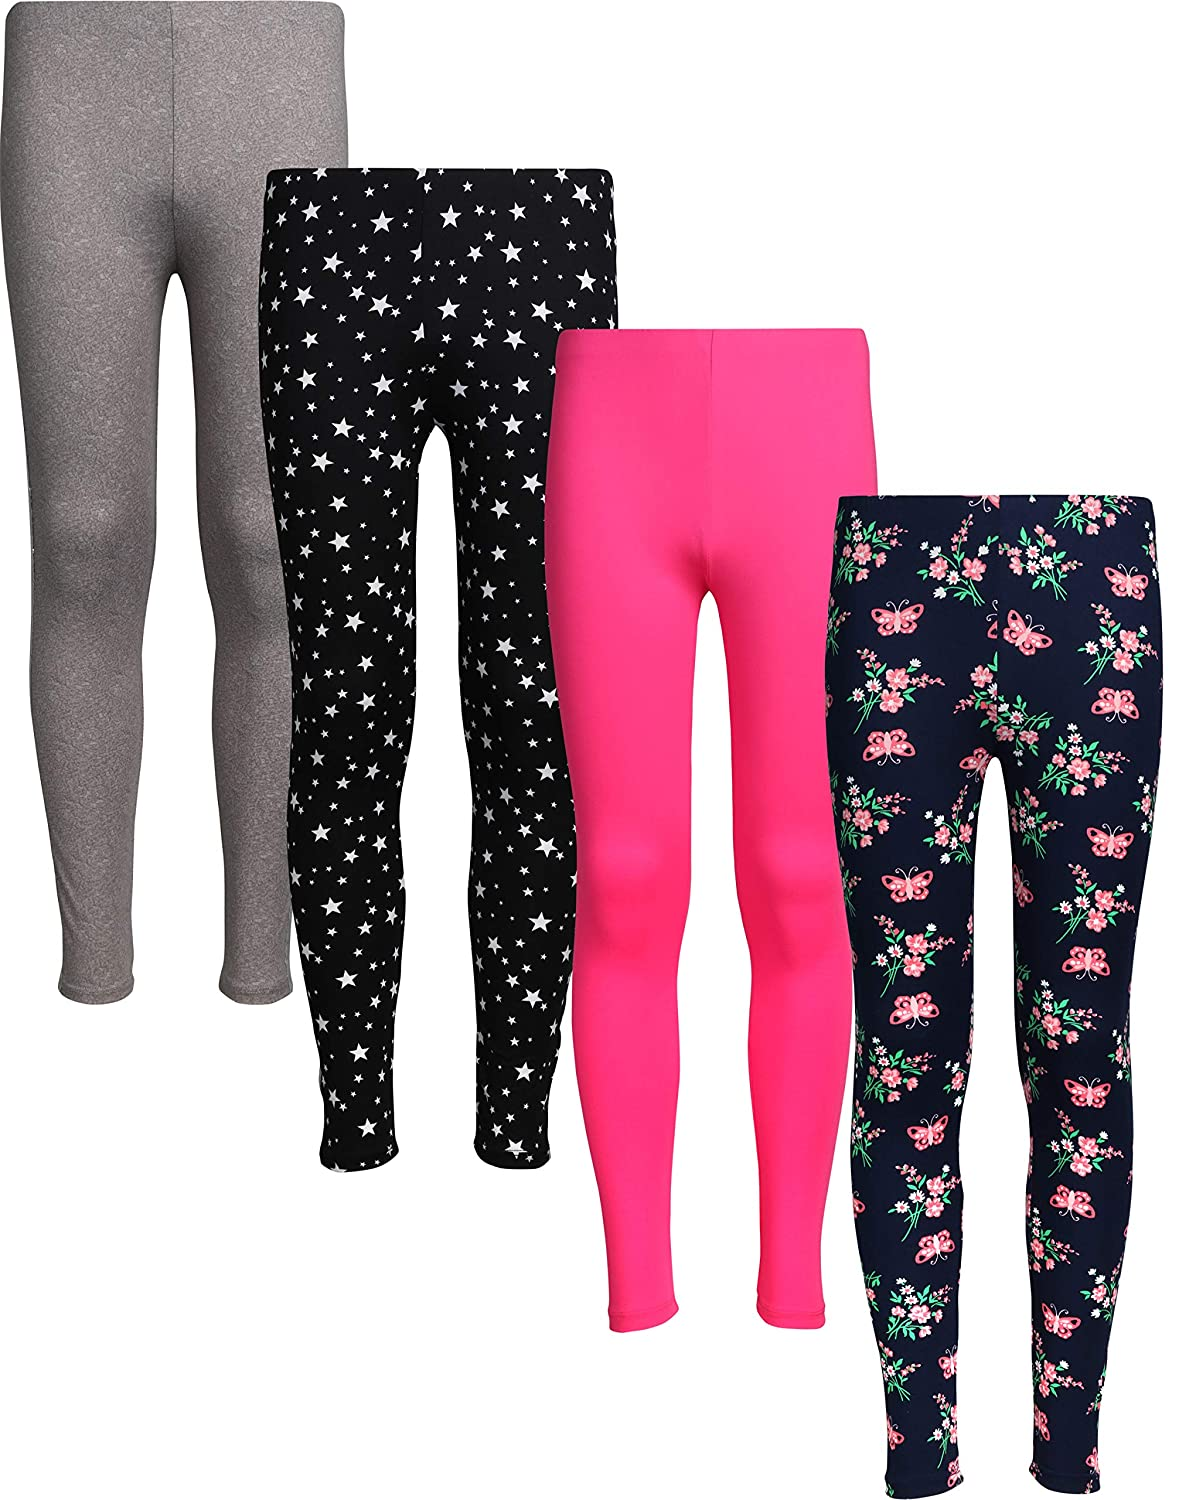 dELiAs 4 Pack Girl/'s Basic Yummy Active Leggings Solids /& Prints